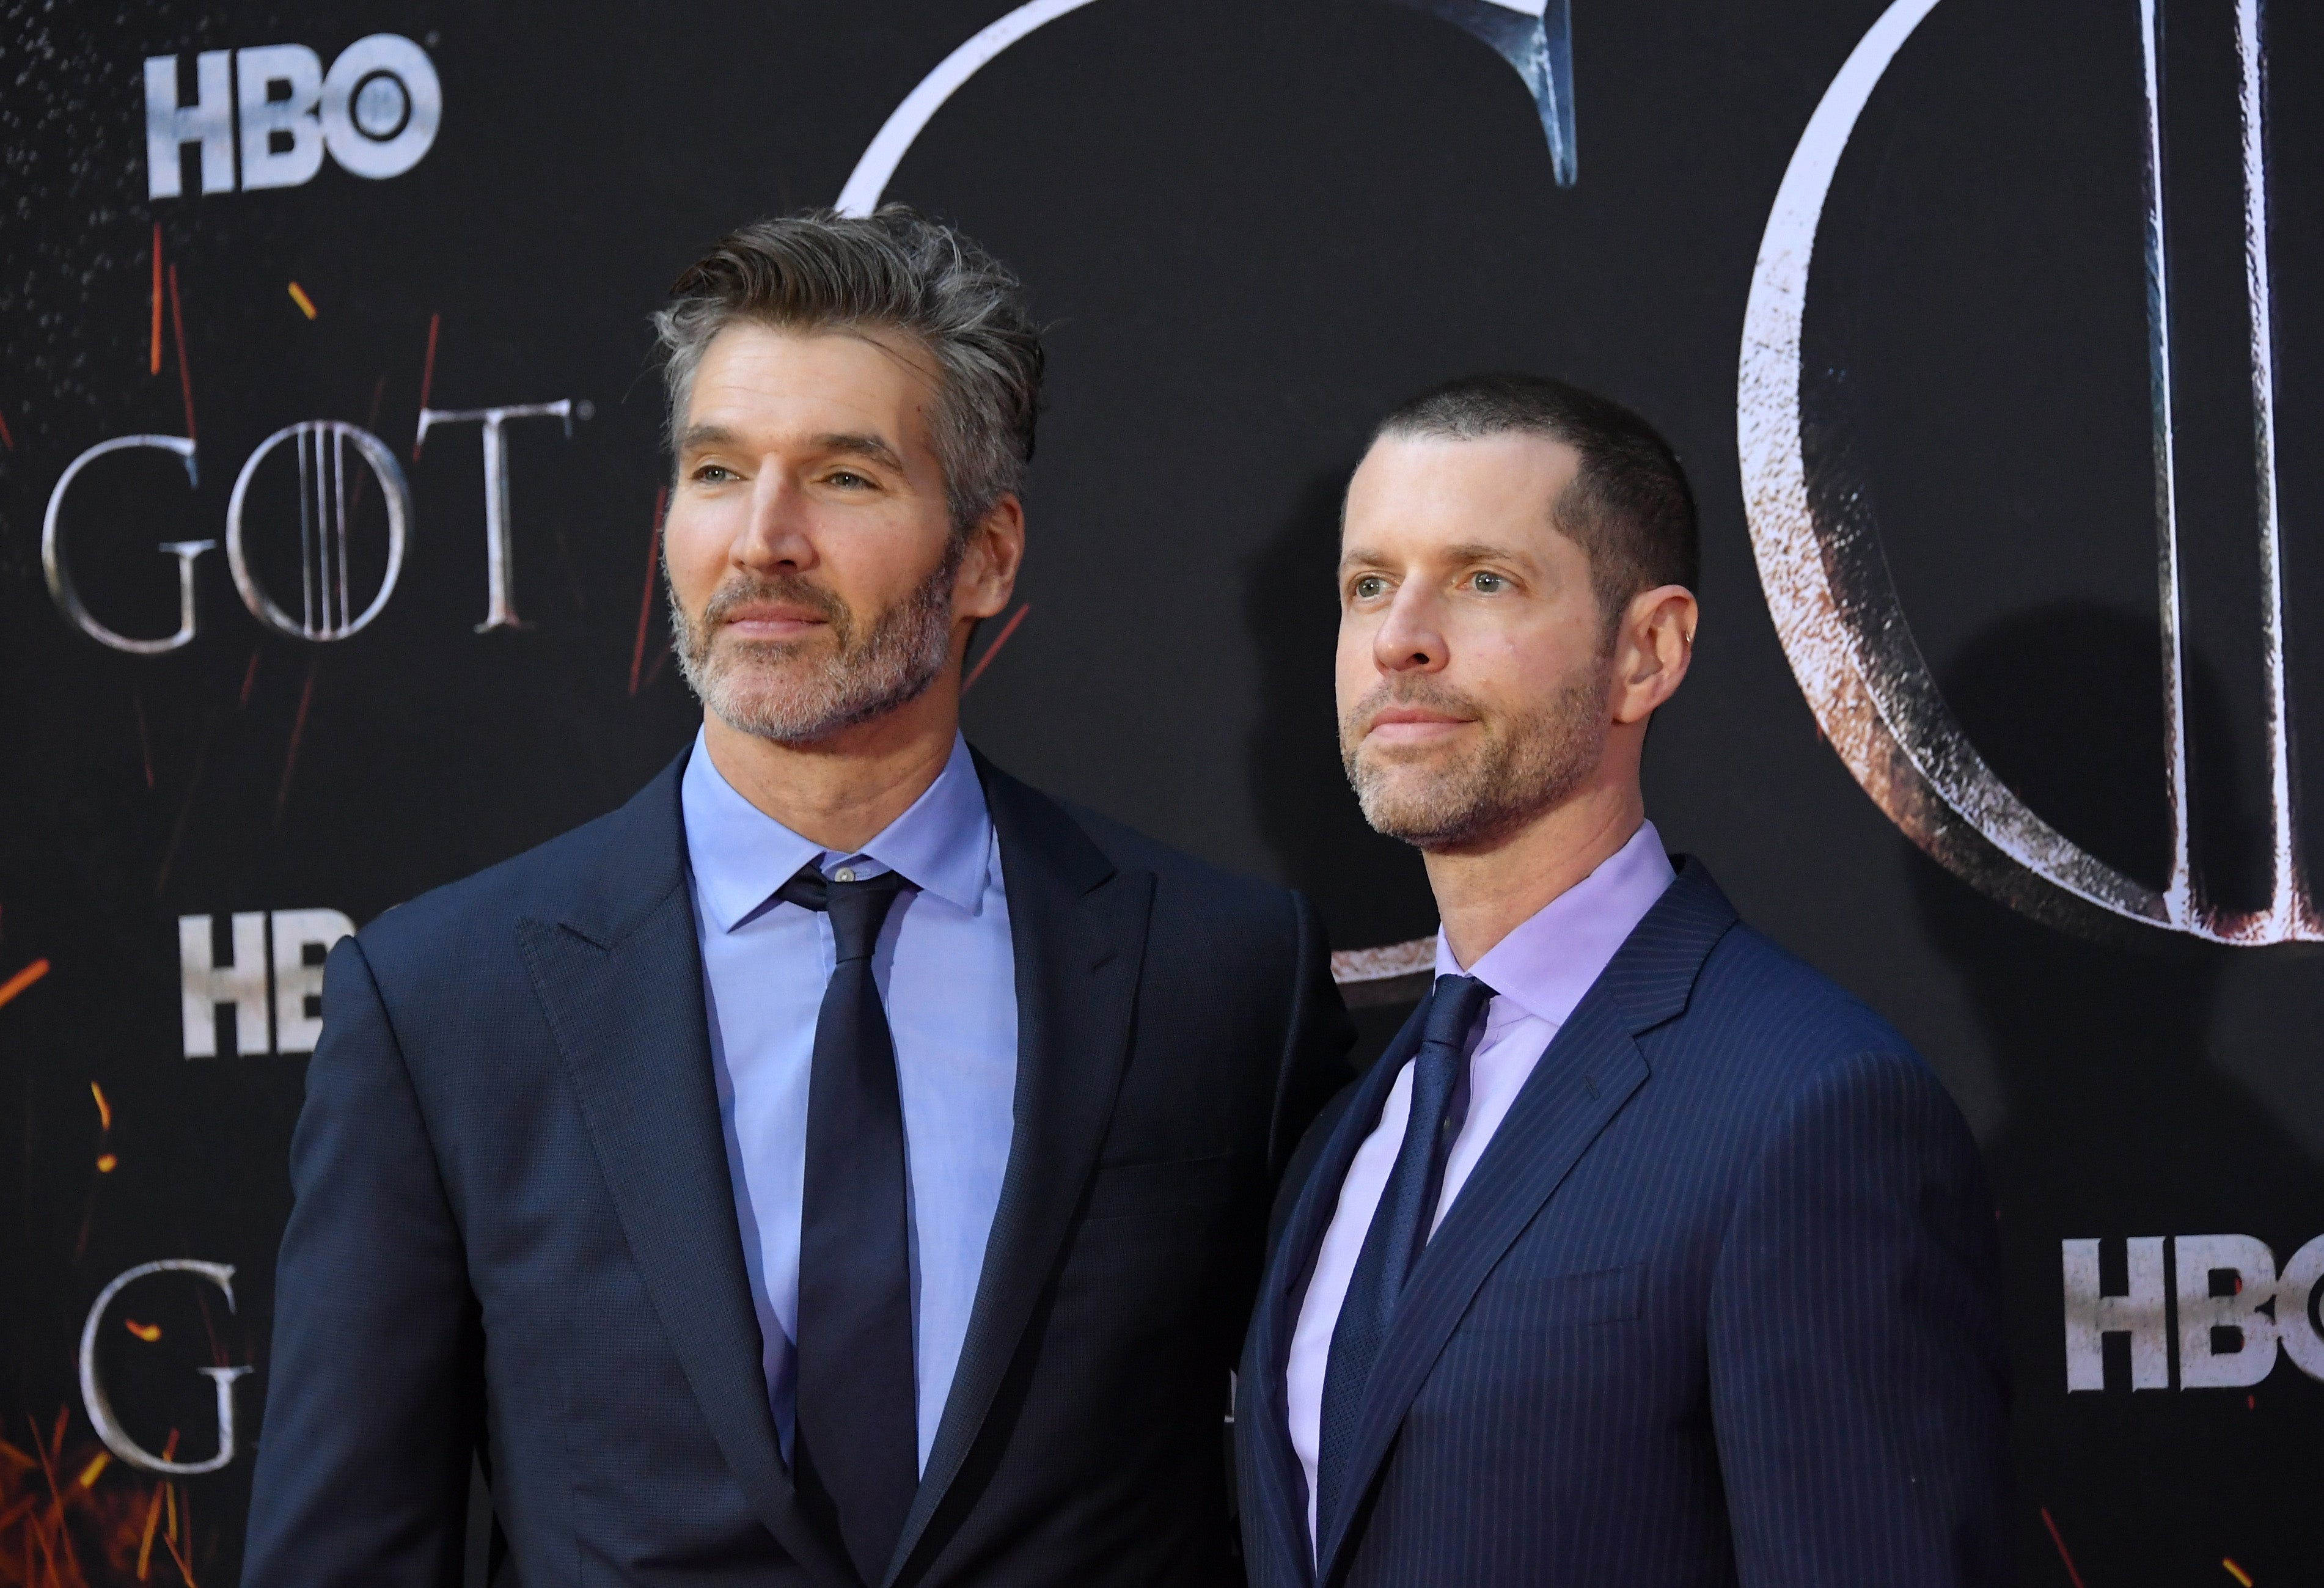 'Game of Thrones' Creators David Benioff and D.B. Weiss Finally Explain the Coffee Cup 'Mistake'